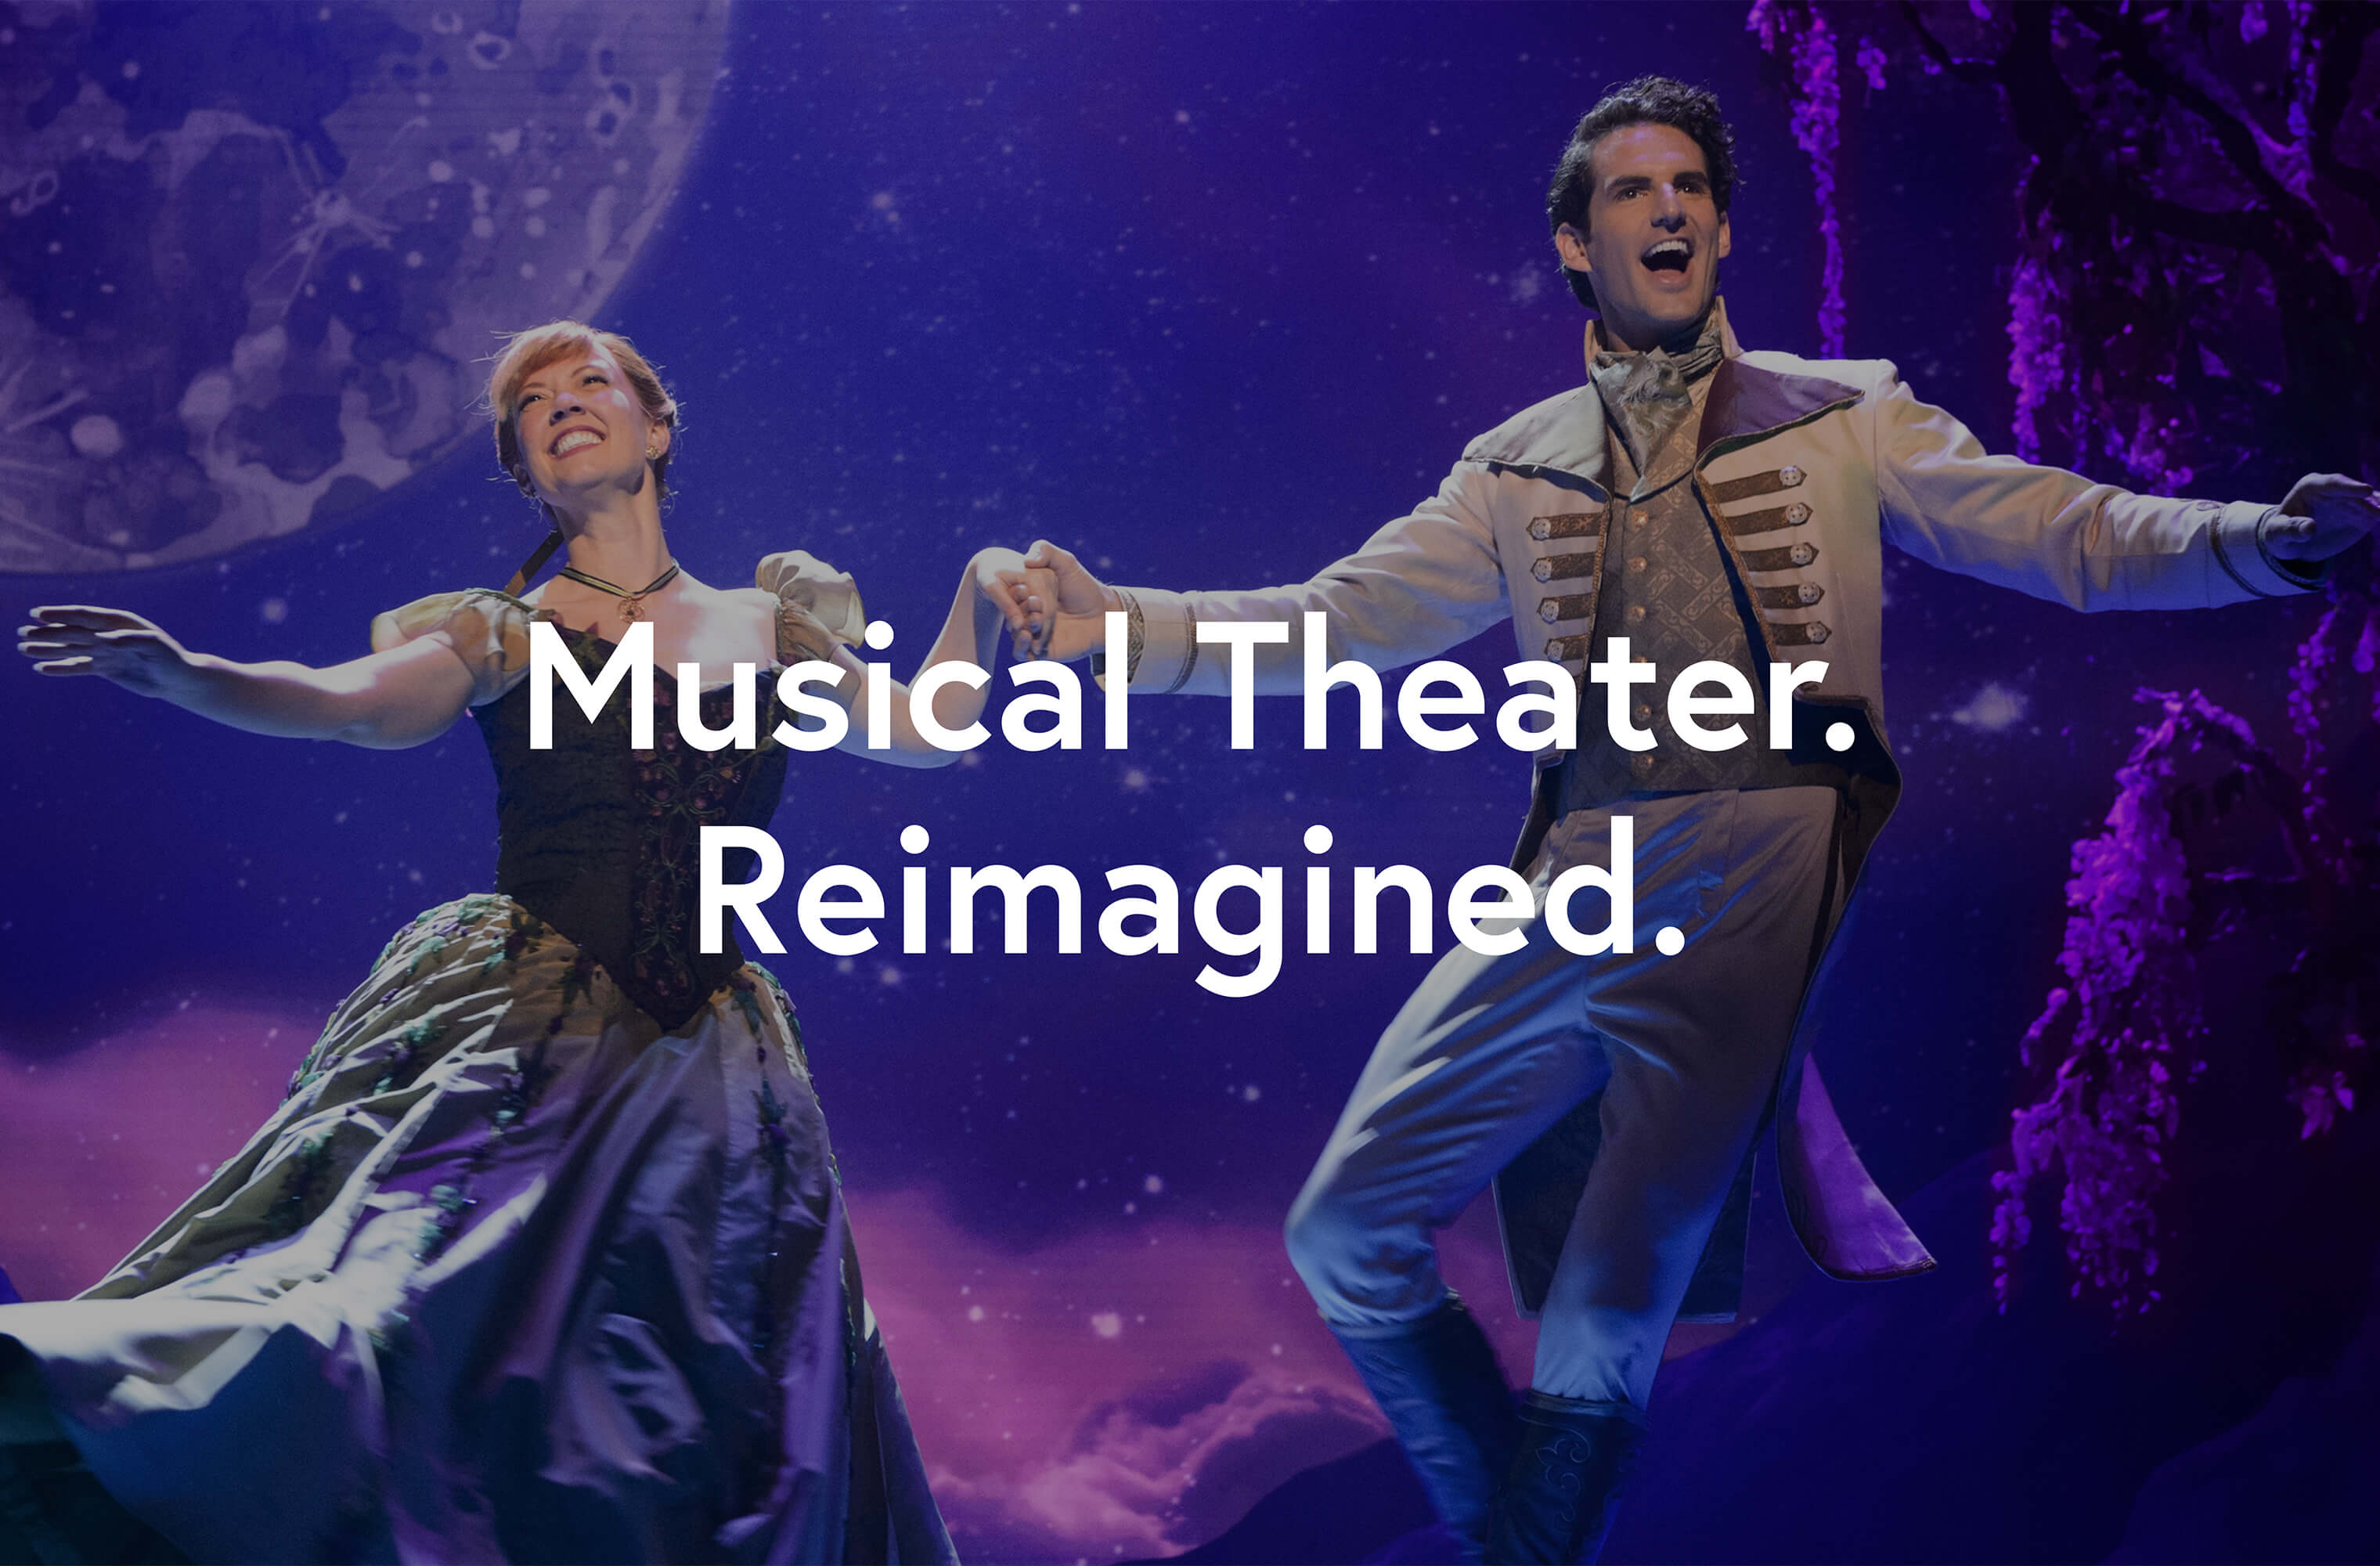 White 'Musical Theater. Reimagined' on a off-broadway image to convey the Vala brand positioning